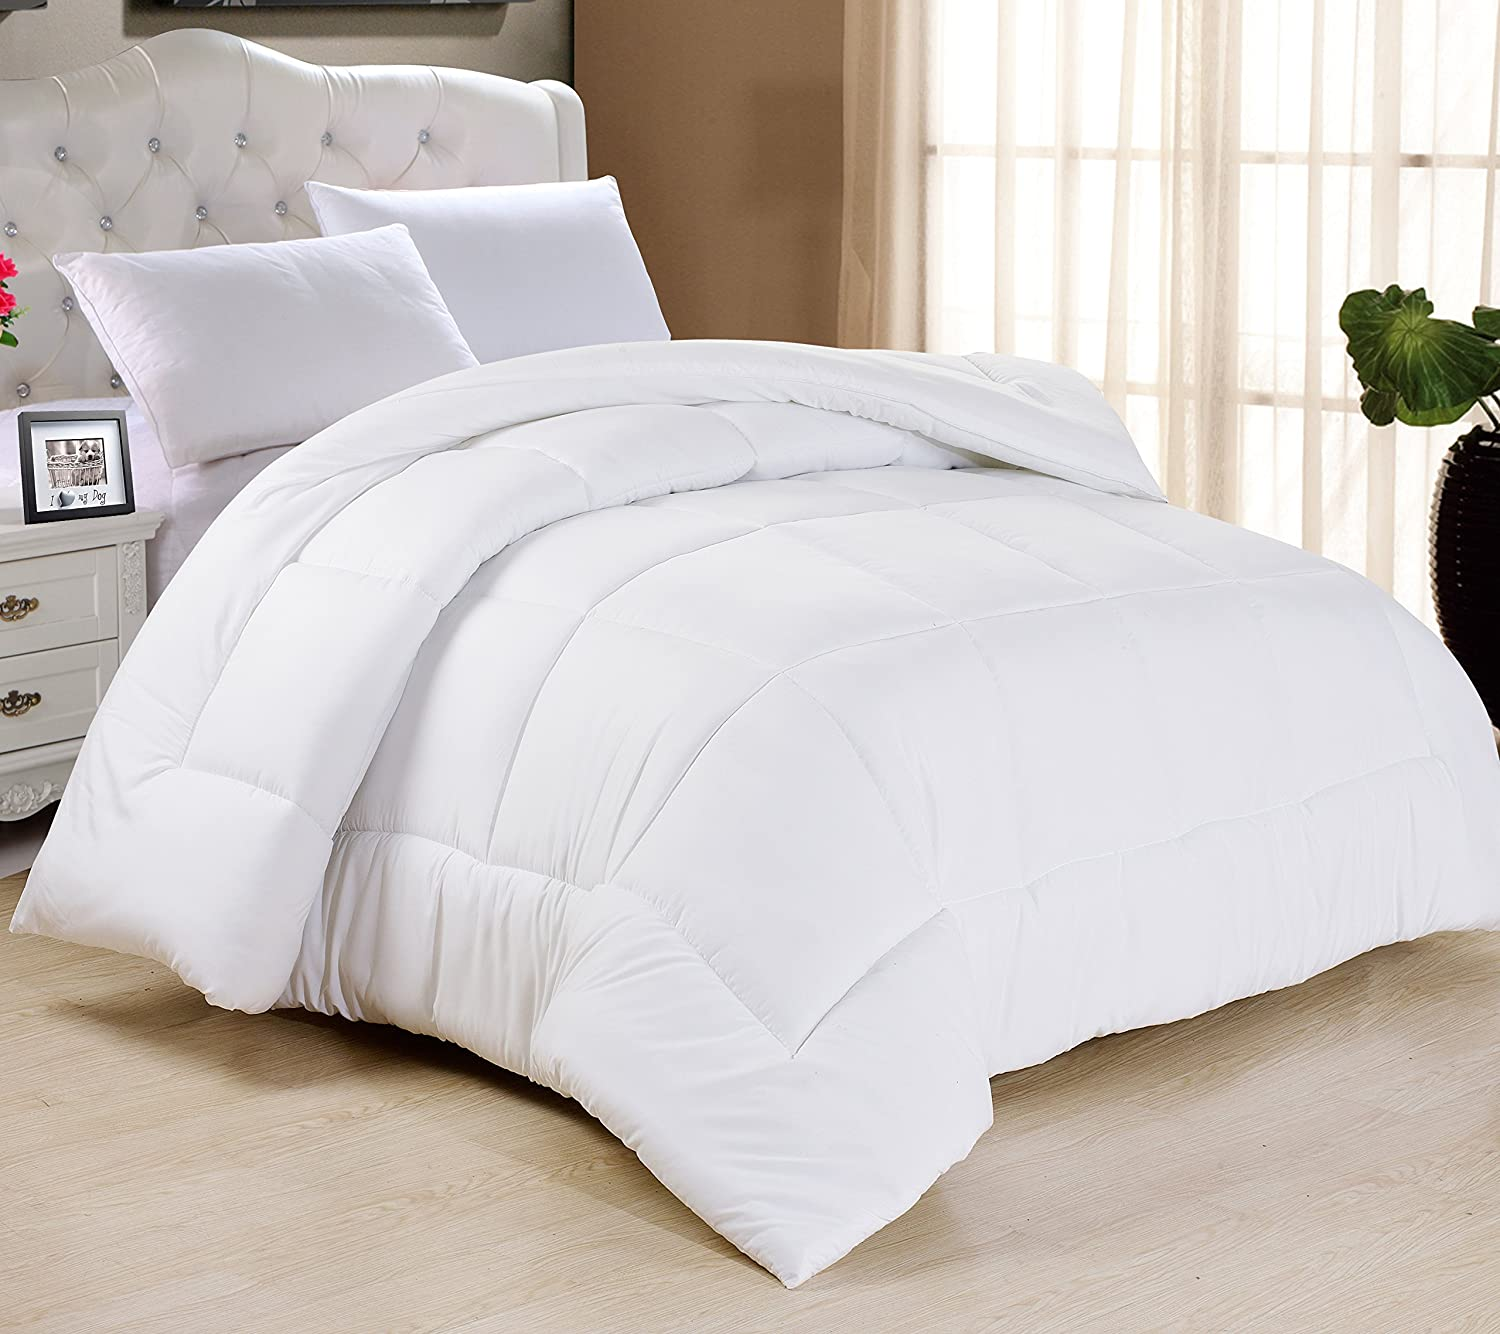 "Swift Home All-Season Extra Soft Luxurious Classic Light-Warmth Goose Down-Alternative Comforter, Twin 68"" x 90"", White"